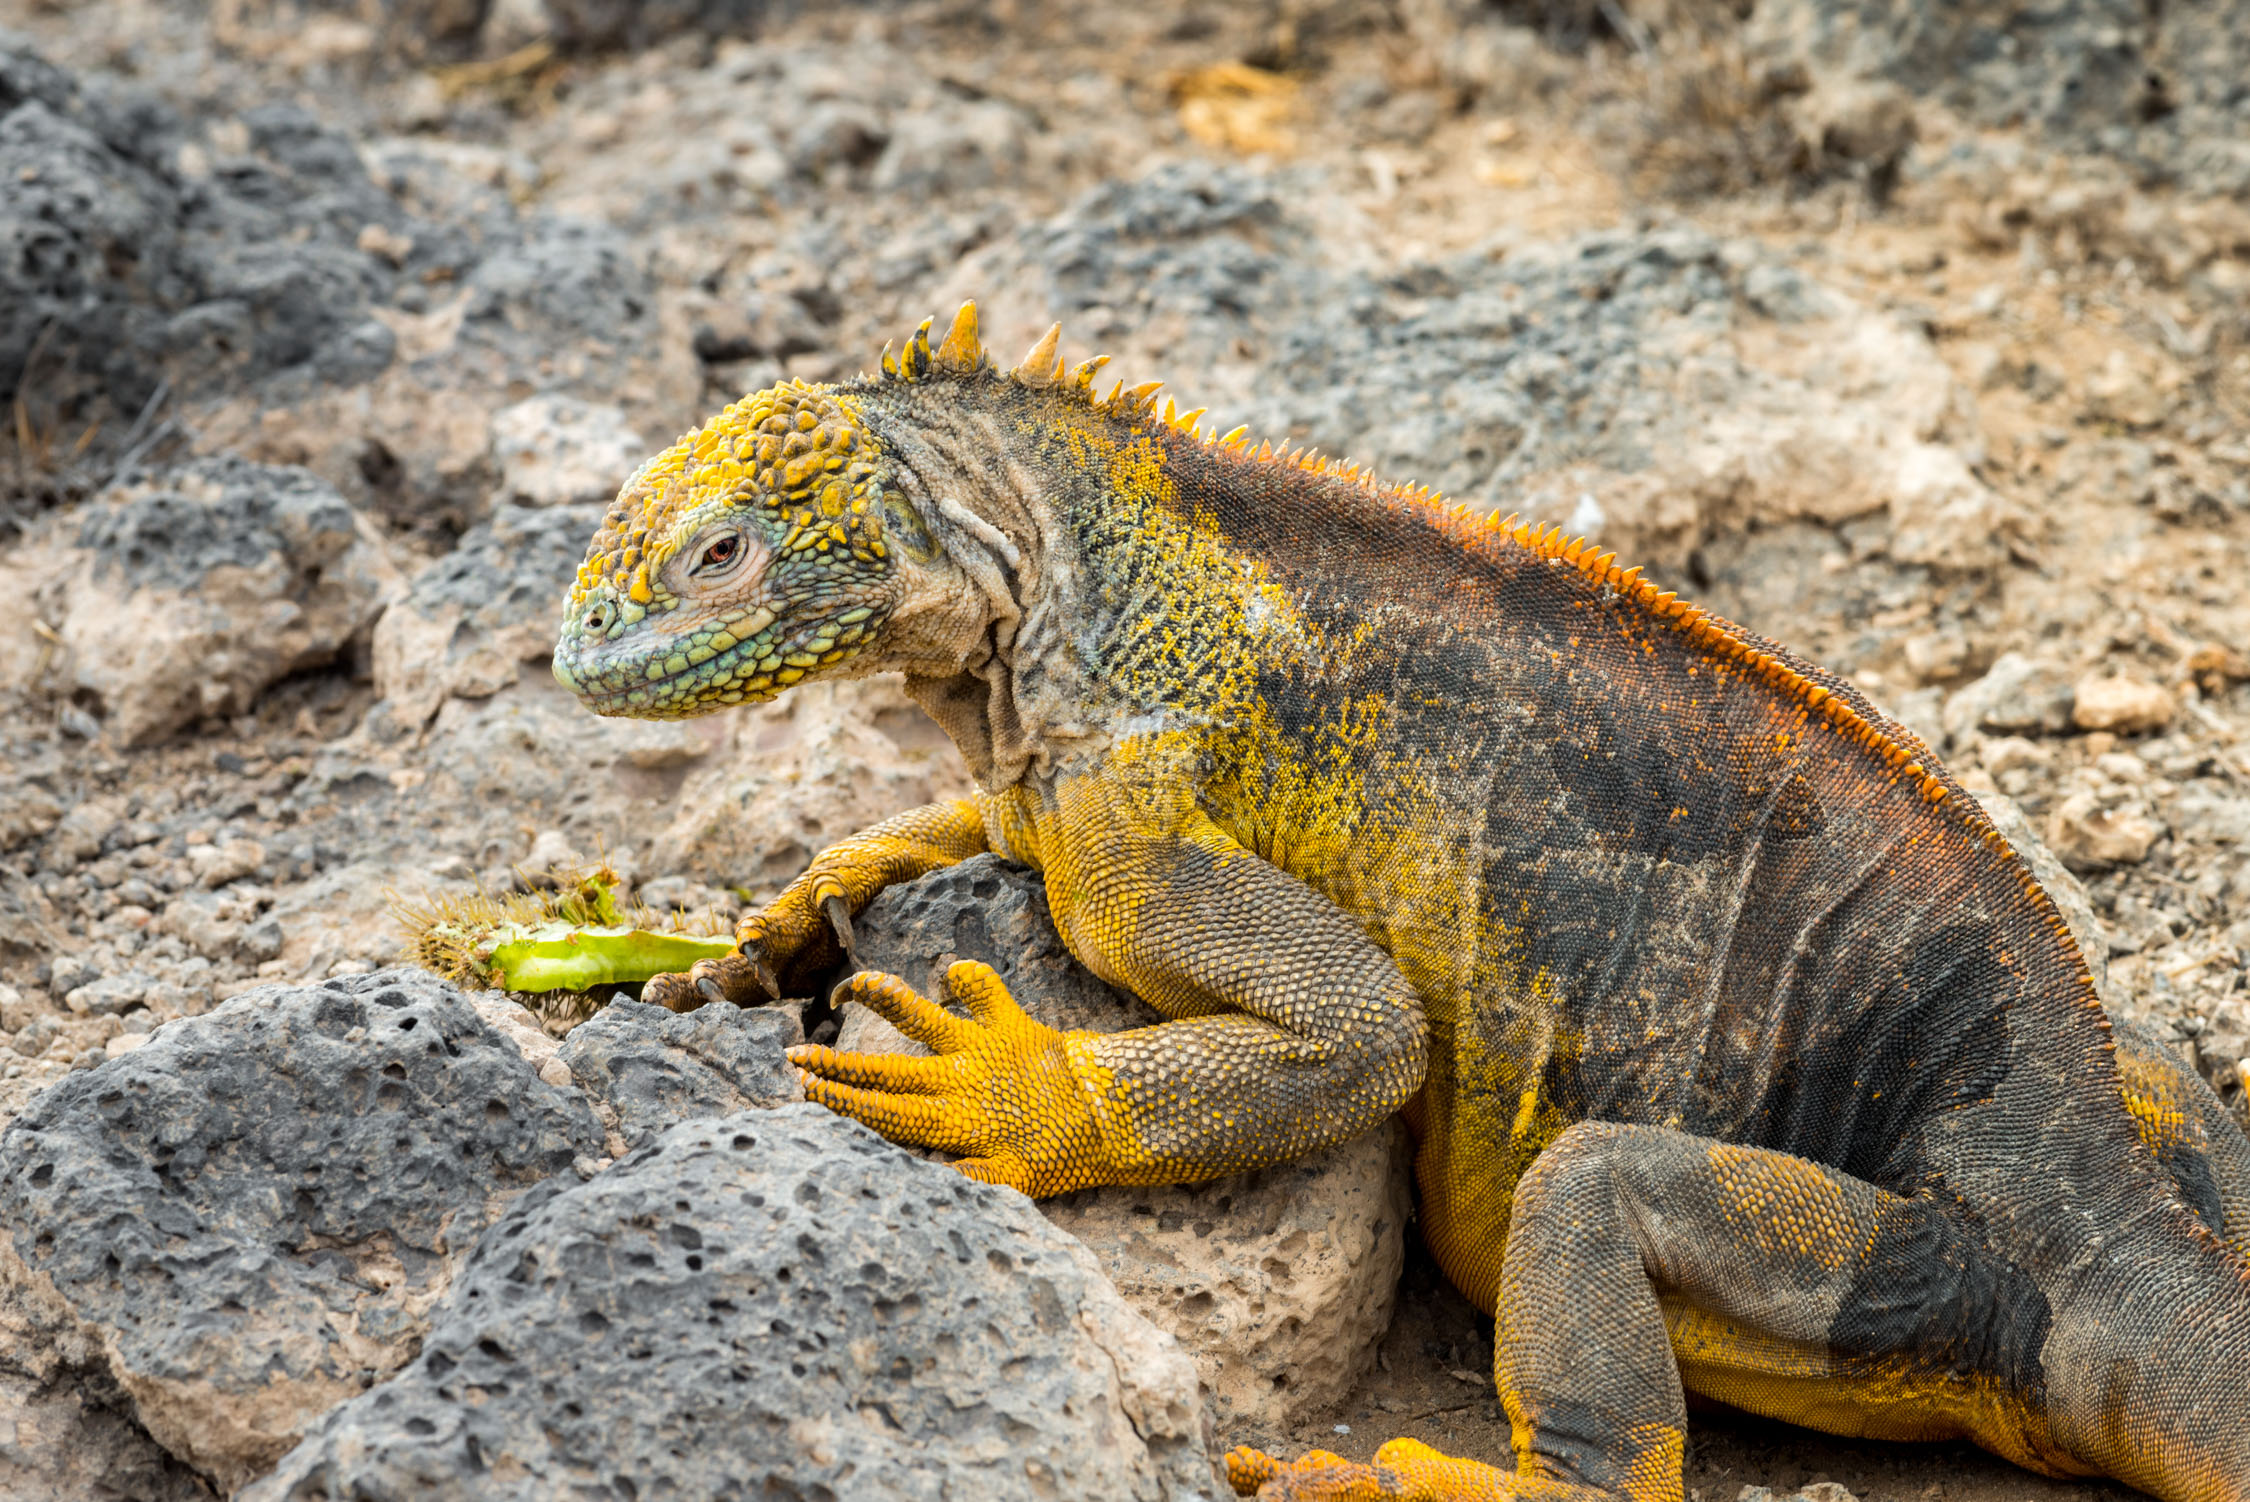 The Land iguanas were stunning! They were all different variations of yellow, green and teal!